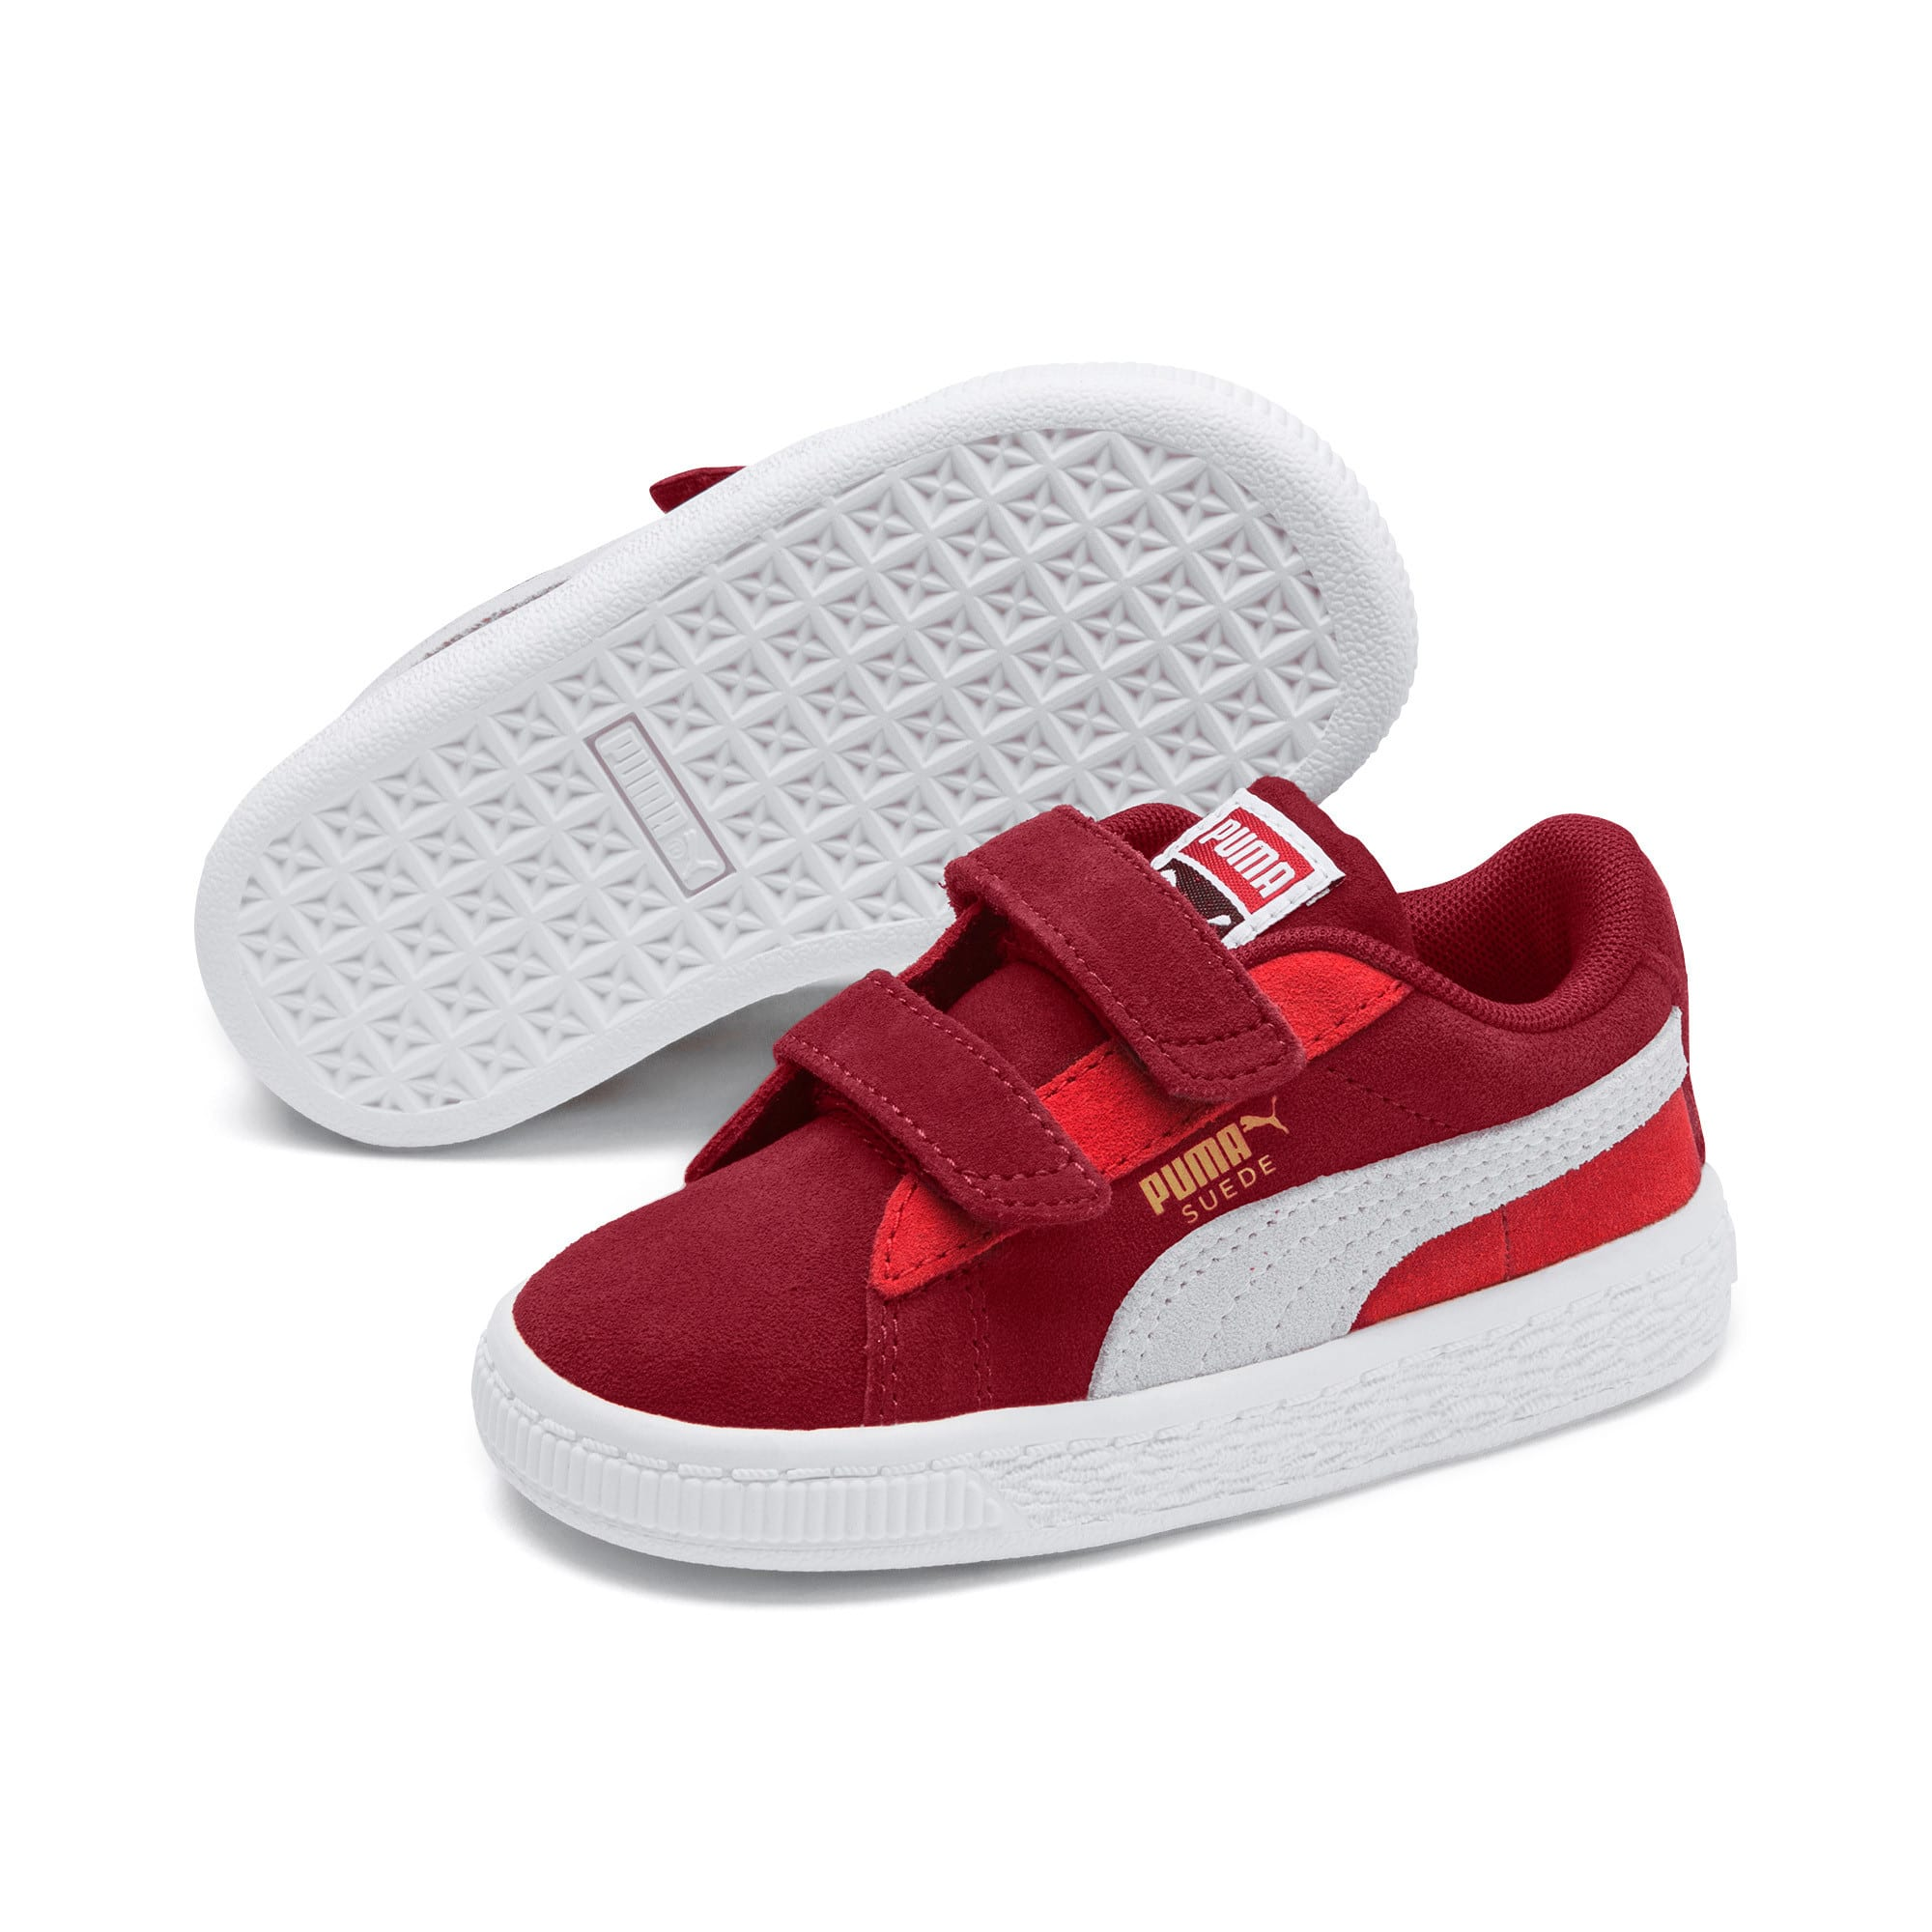 Thumbnail 2 of Suede Classic Toddler Shoes, Rhubarb-Puma W-High Risk Red, medium